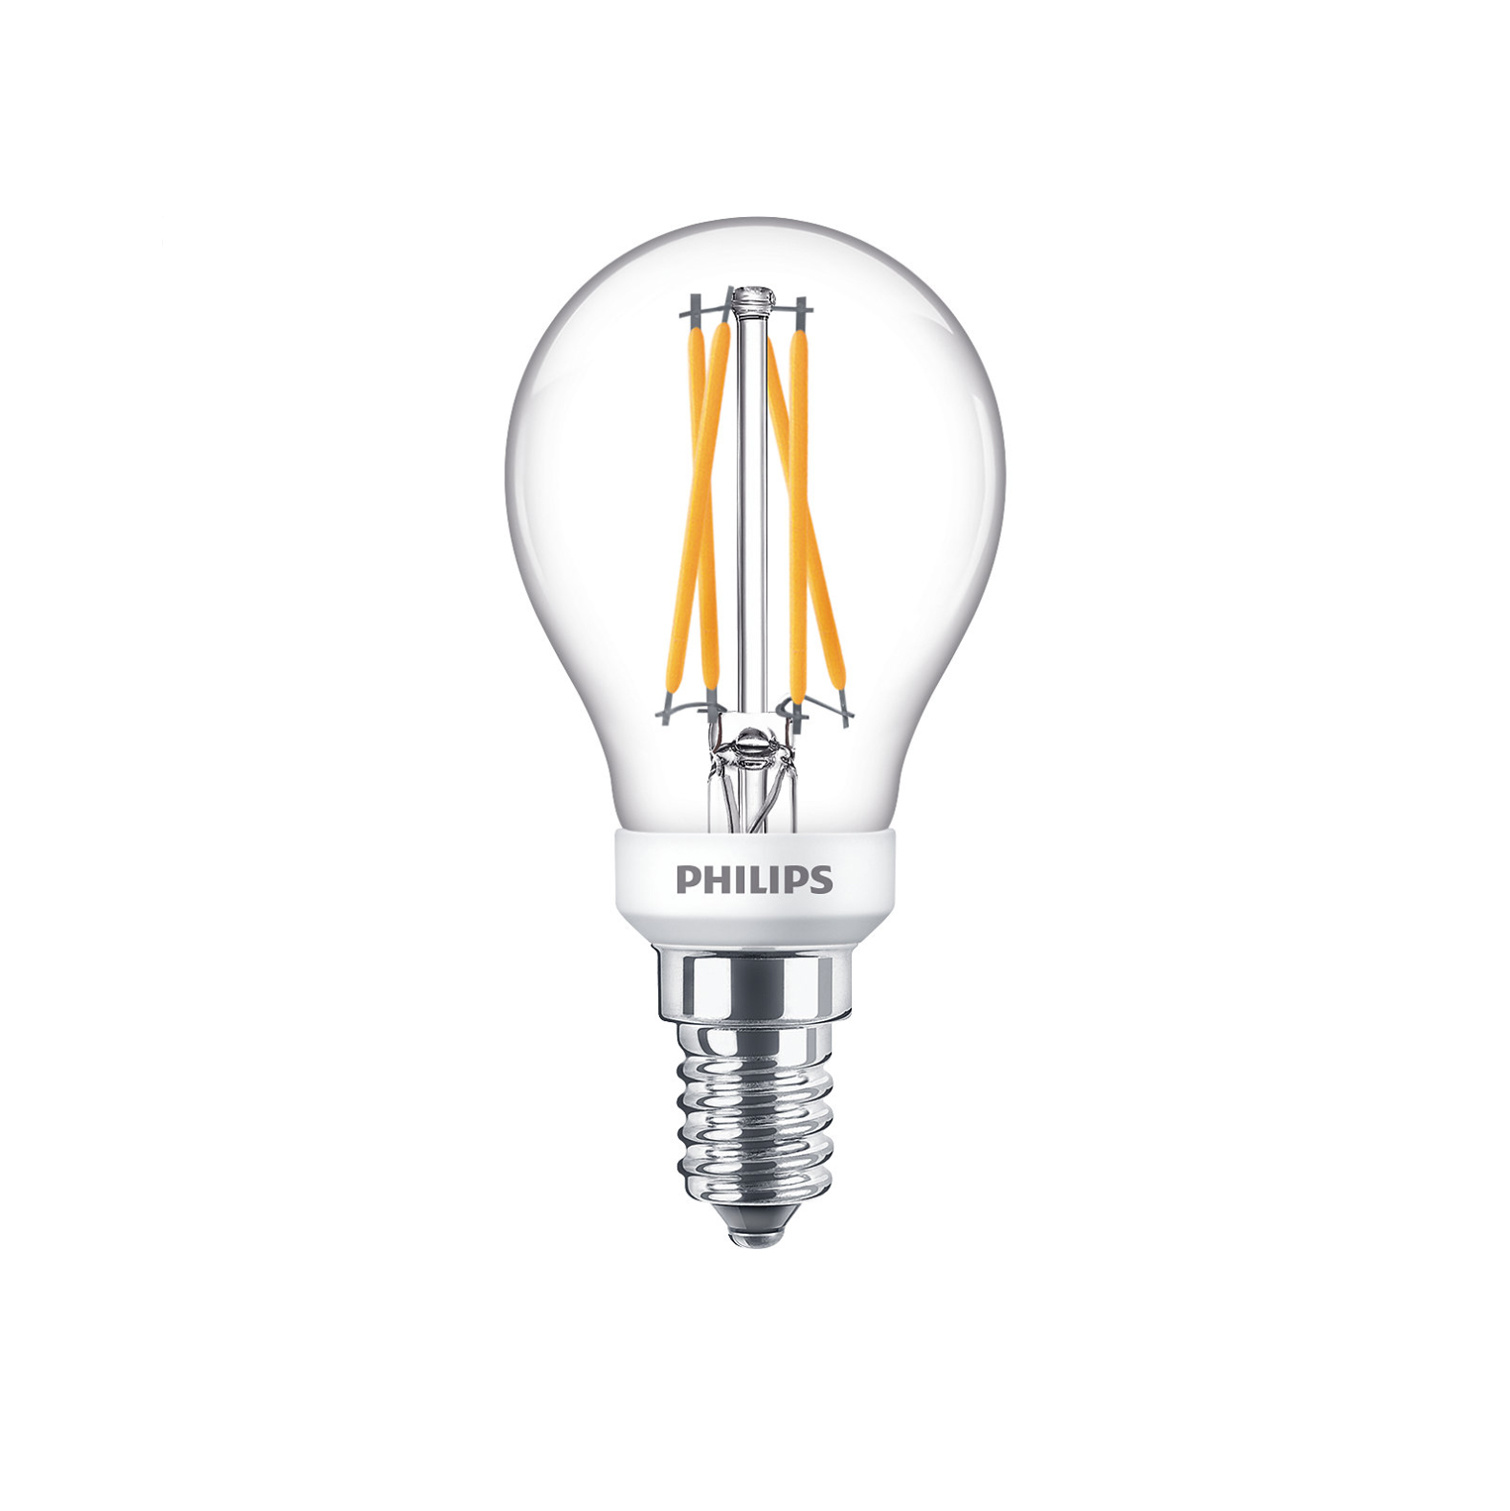 Philips LED E14 kogel 25-3,5 Watt Philips warmglow filament DIM